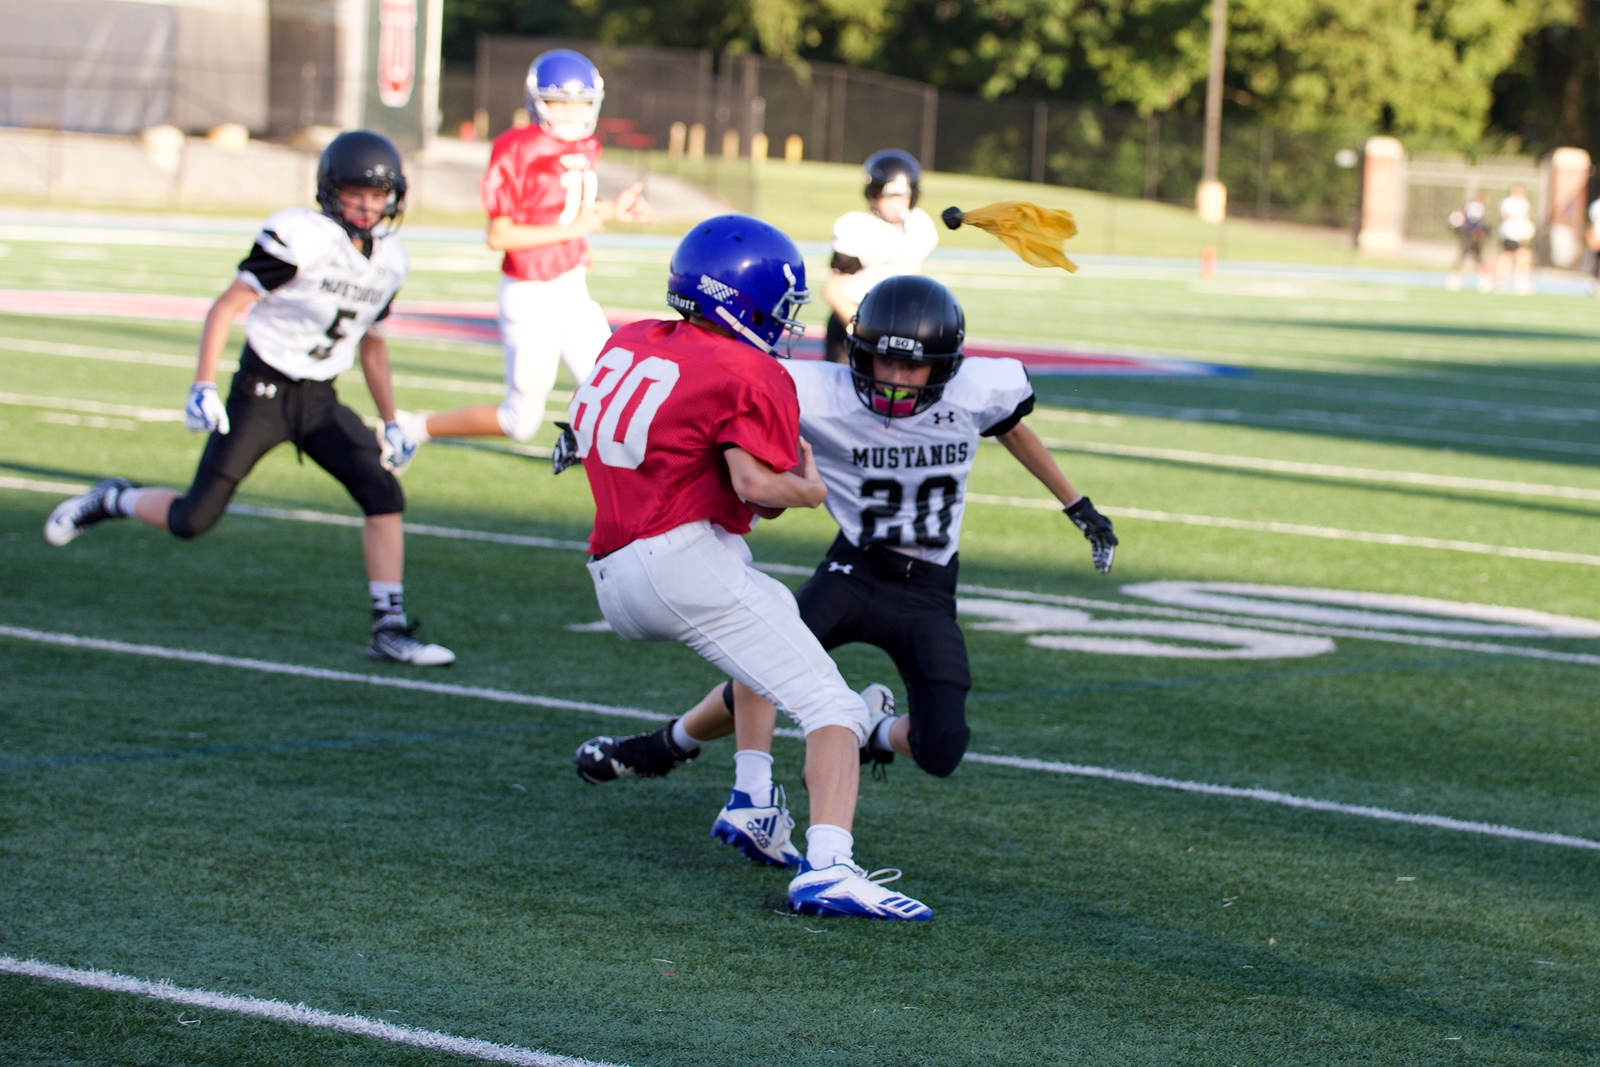 7th Grade vs. MUS 8/17